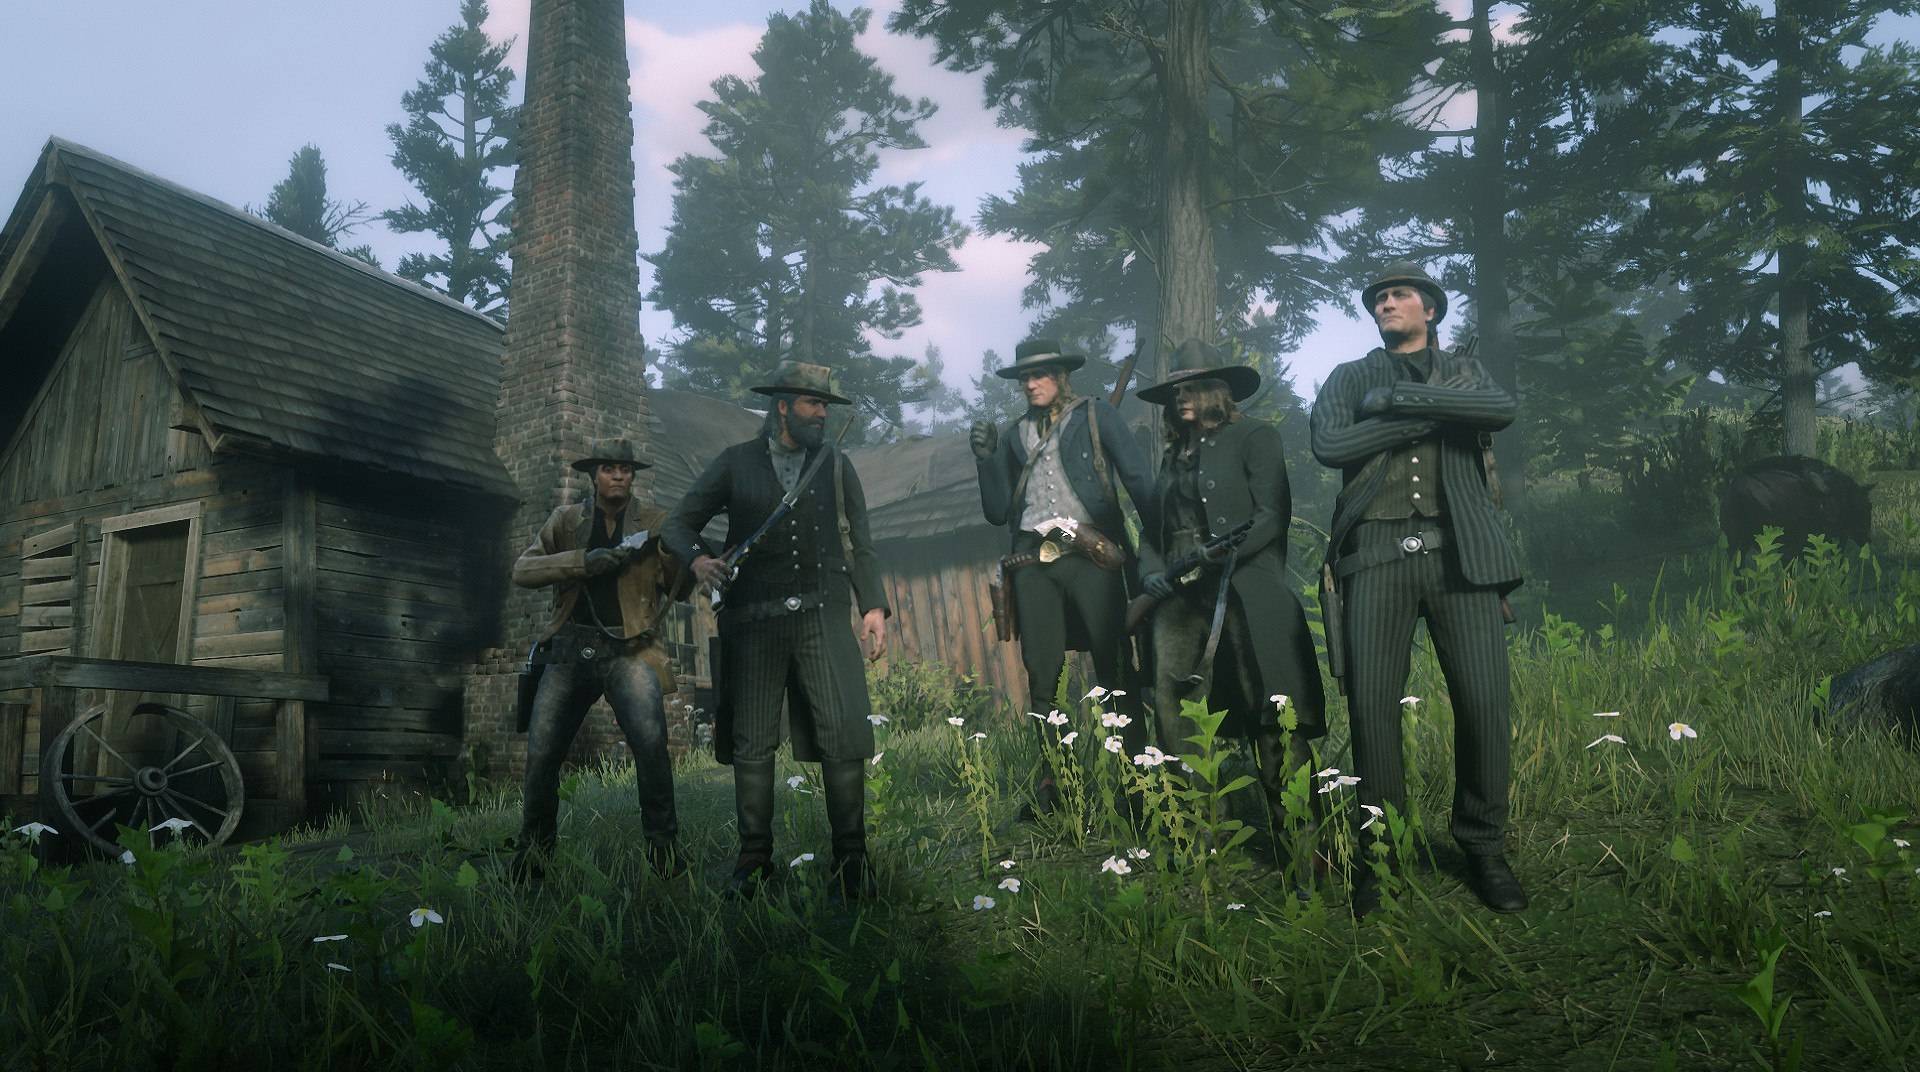 Red Dead Online comes alive with friends